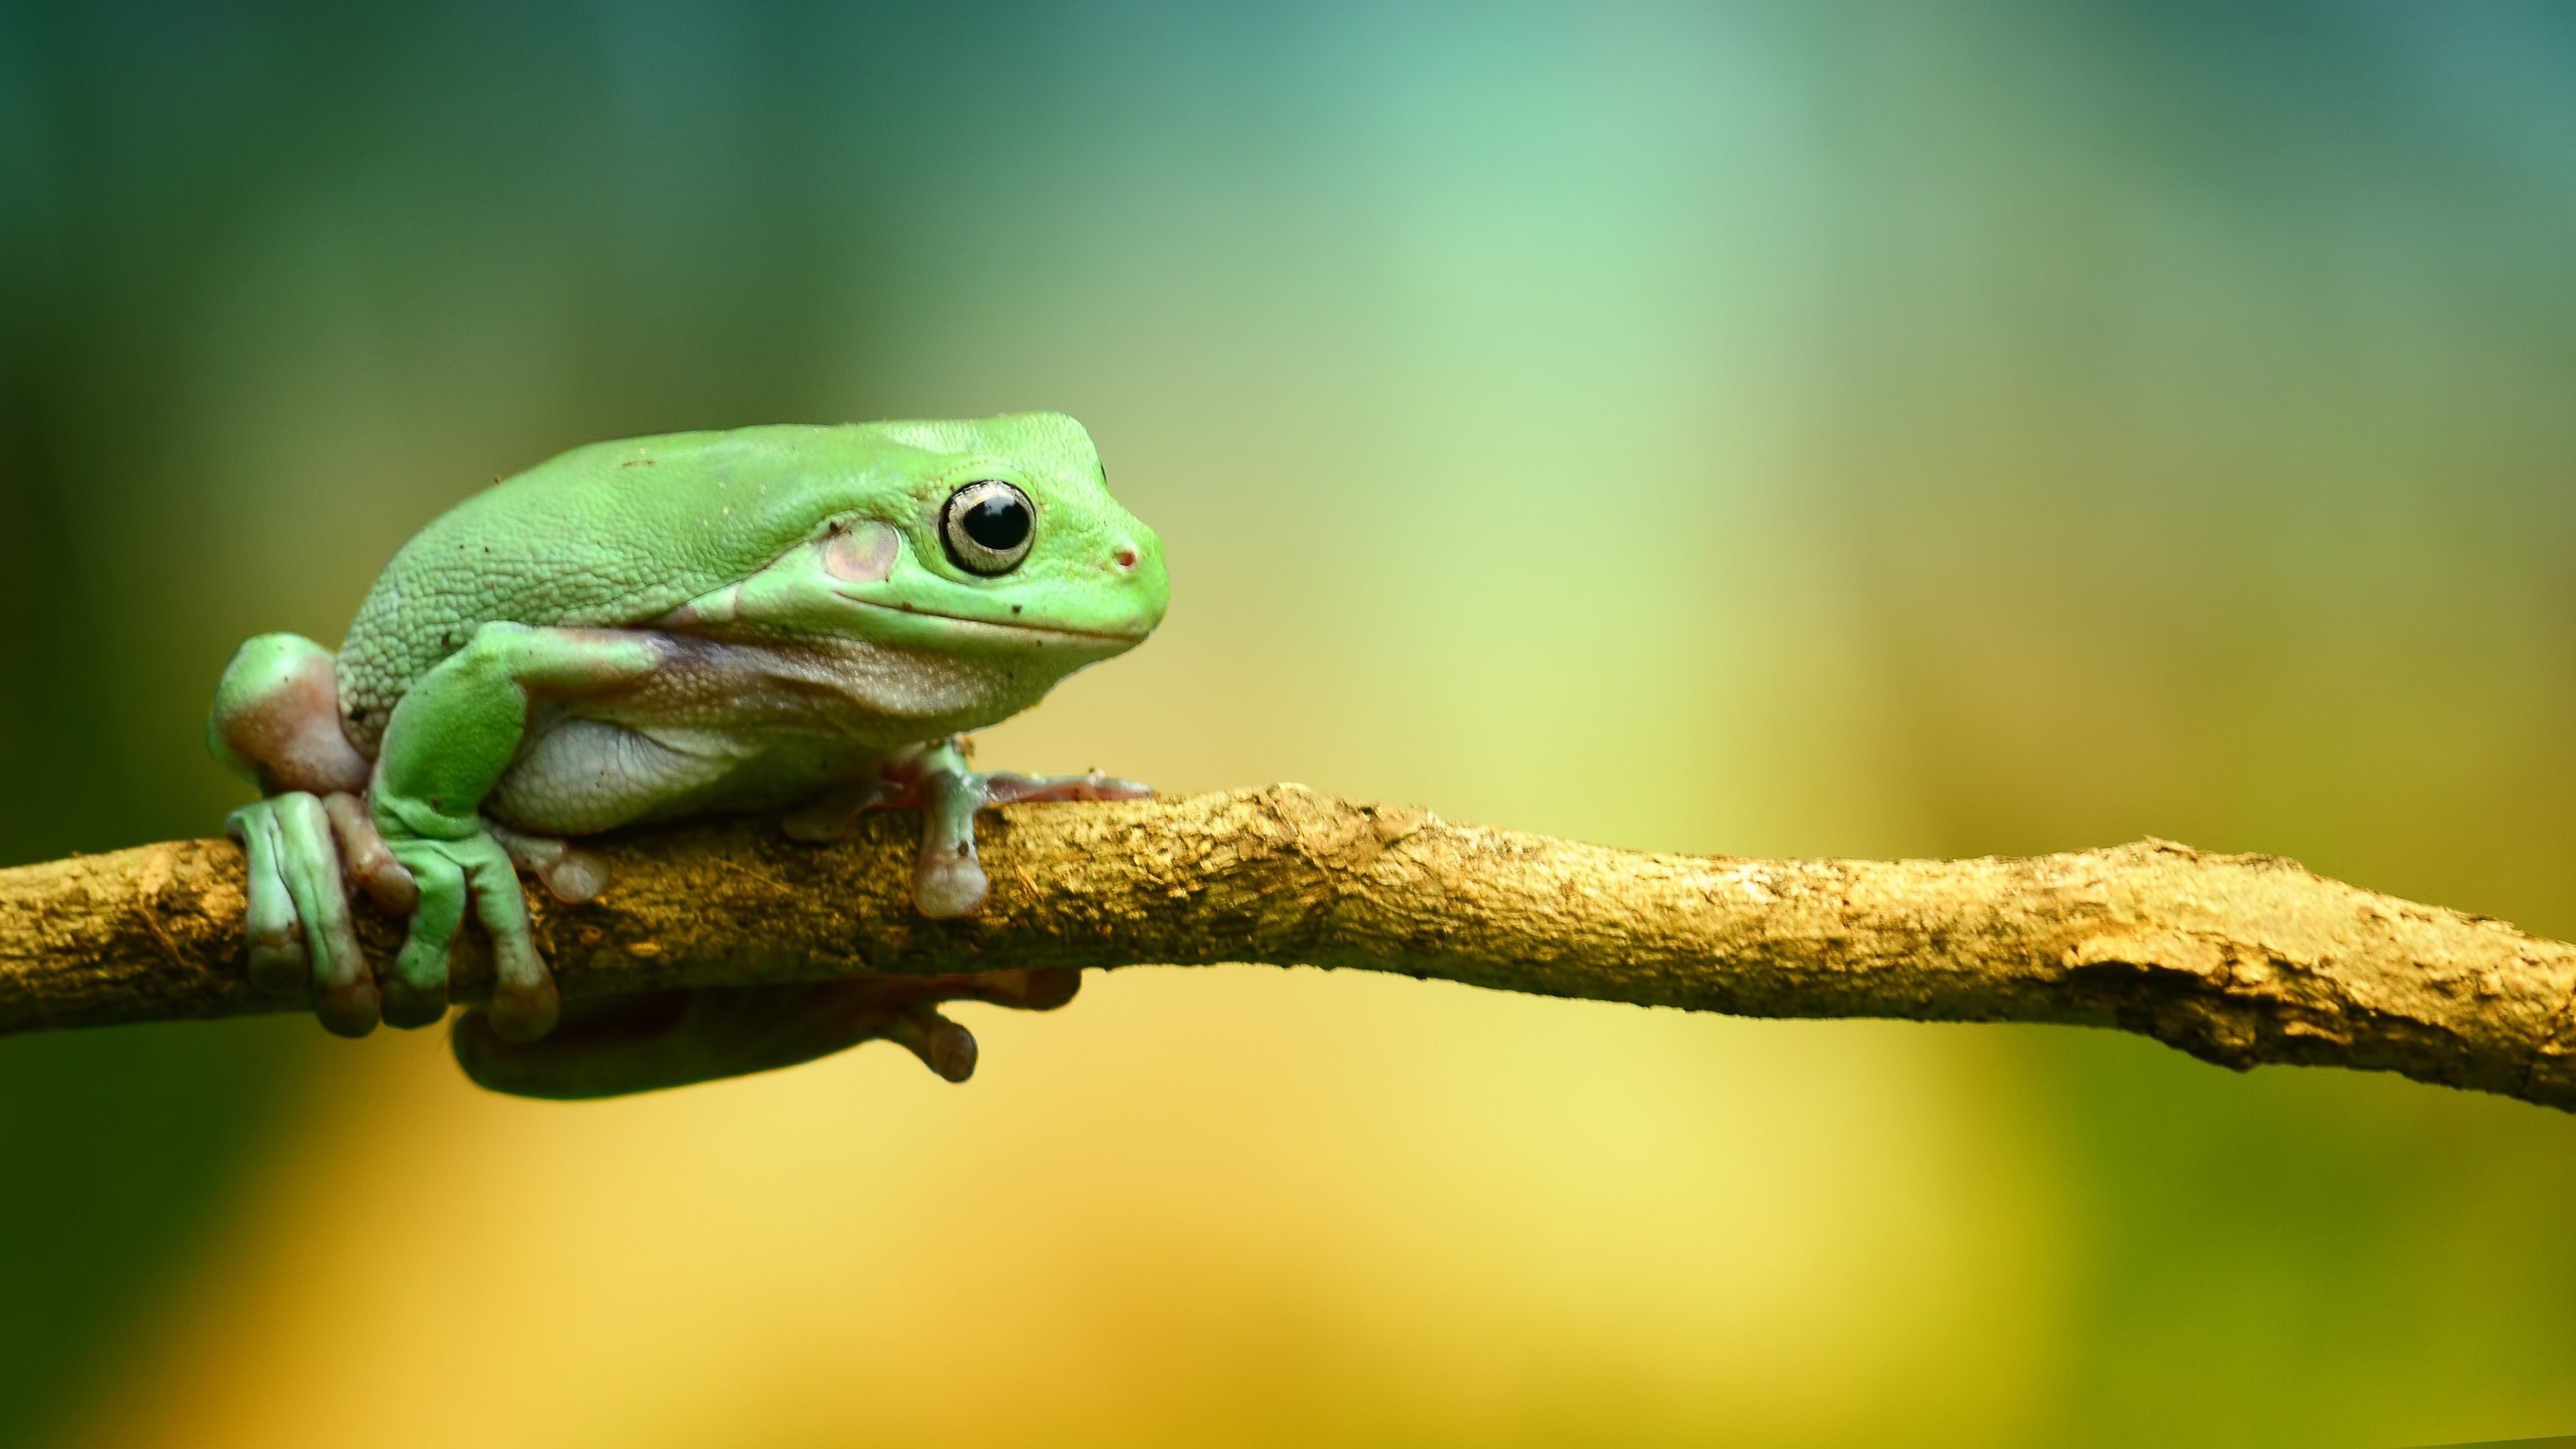 Res: 3840x2160, Green Frog